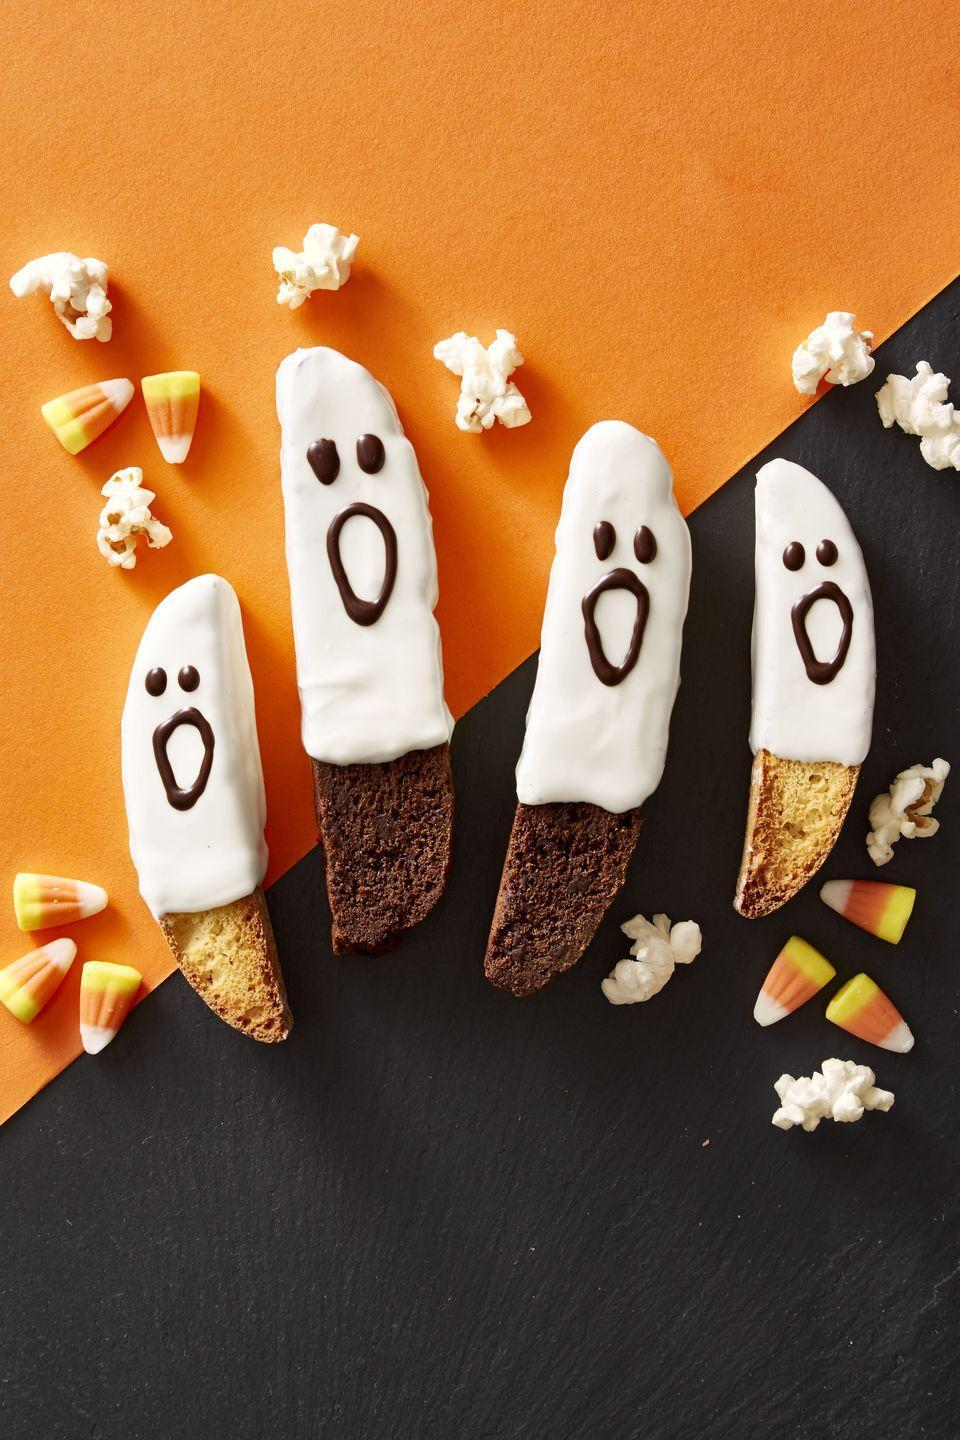 """<p>Get some help from your kids when party prep mode is in full swing to make these boo-tifully decorated cookies.</p><p><em><a href=""""https://www.goodhousekeeping.com/food-recipes/a46101/boo-scotti-recipe/"""" rel=""""nofollow noopener"""" target=""""_blank"""" data-ylk=""""slk:Get the recipe for Boo-scotti »"""" class=""""link rapid-noclick-resp"""">Get the recipe for Boo-scotti »</a></em></p>"""